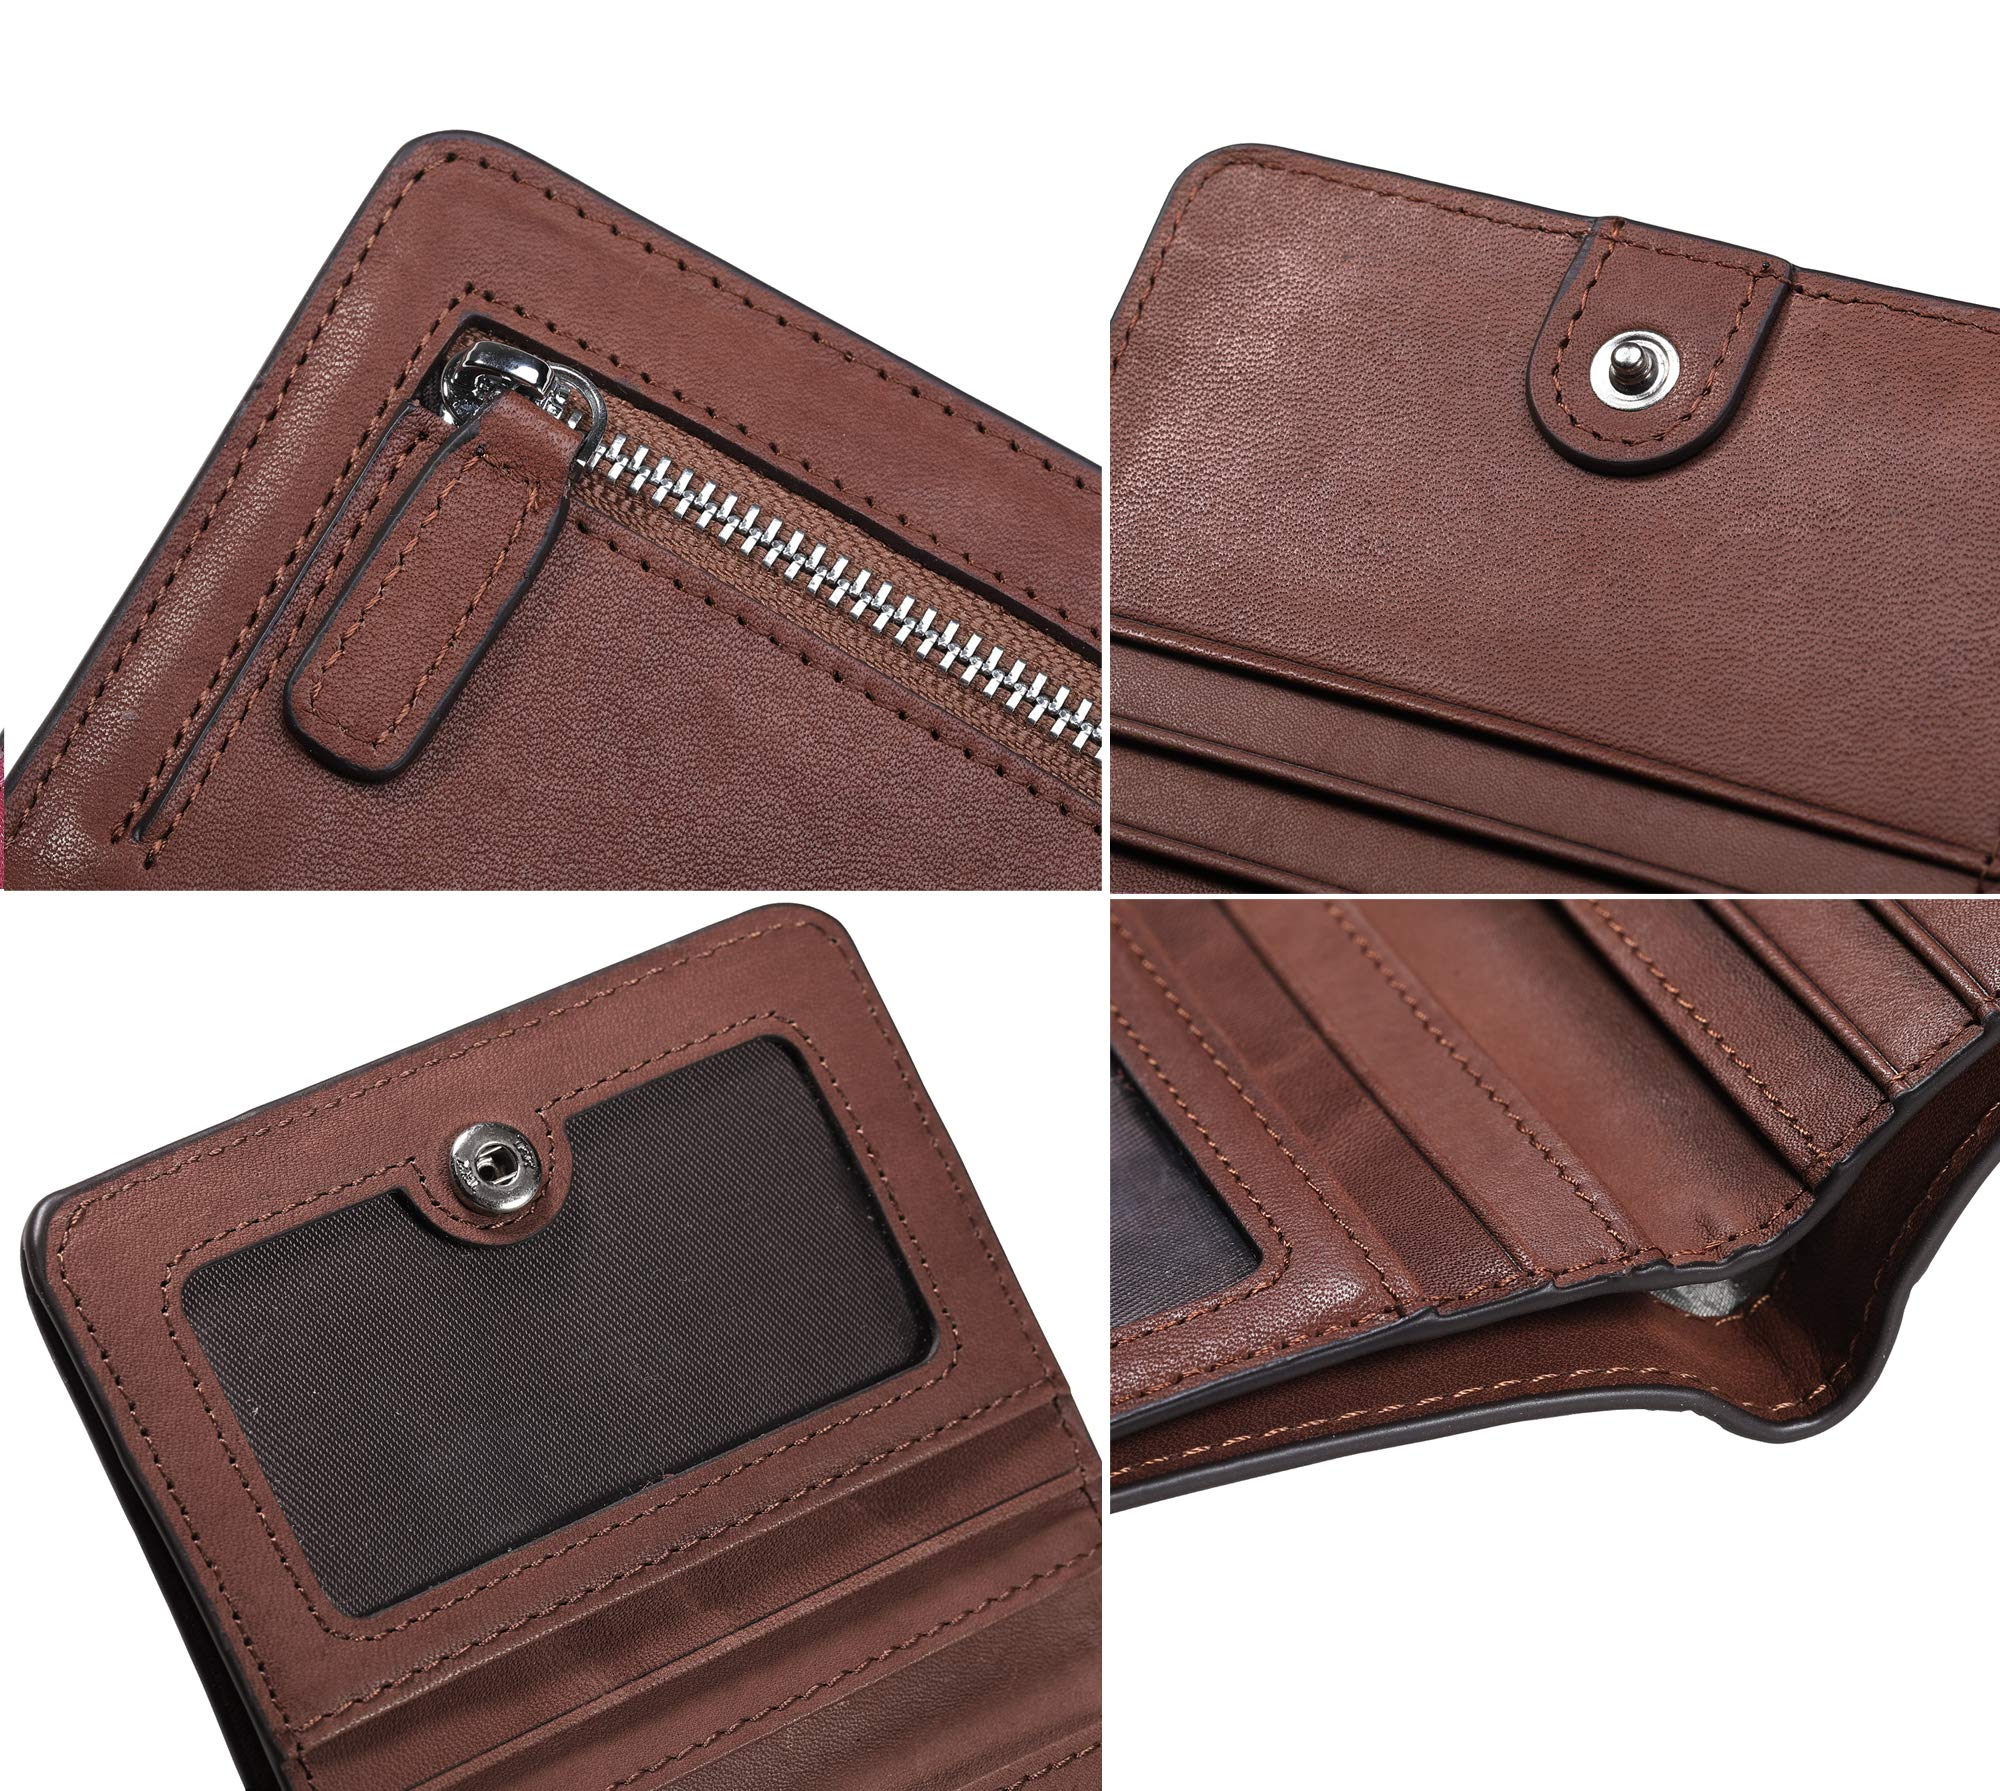 BIG SALE-AINIMOER Women's RFID Blocking Leather Small Compact Bifold Pocket Wallet Ladies Mini Purse with id Window (Vintage Brown) by AINIMOER (Image #8)